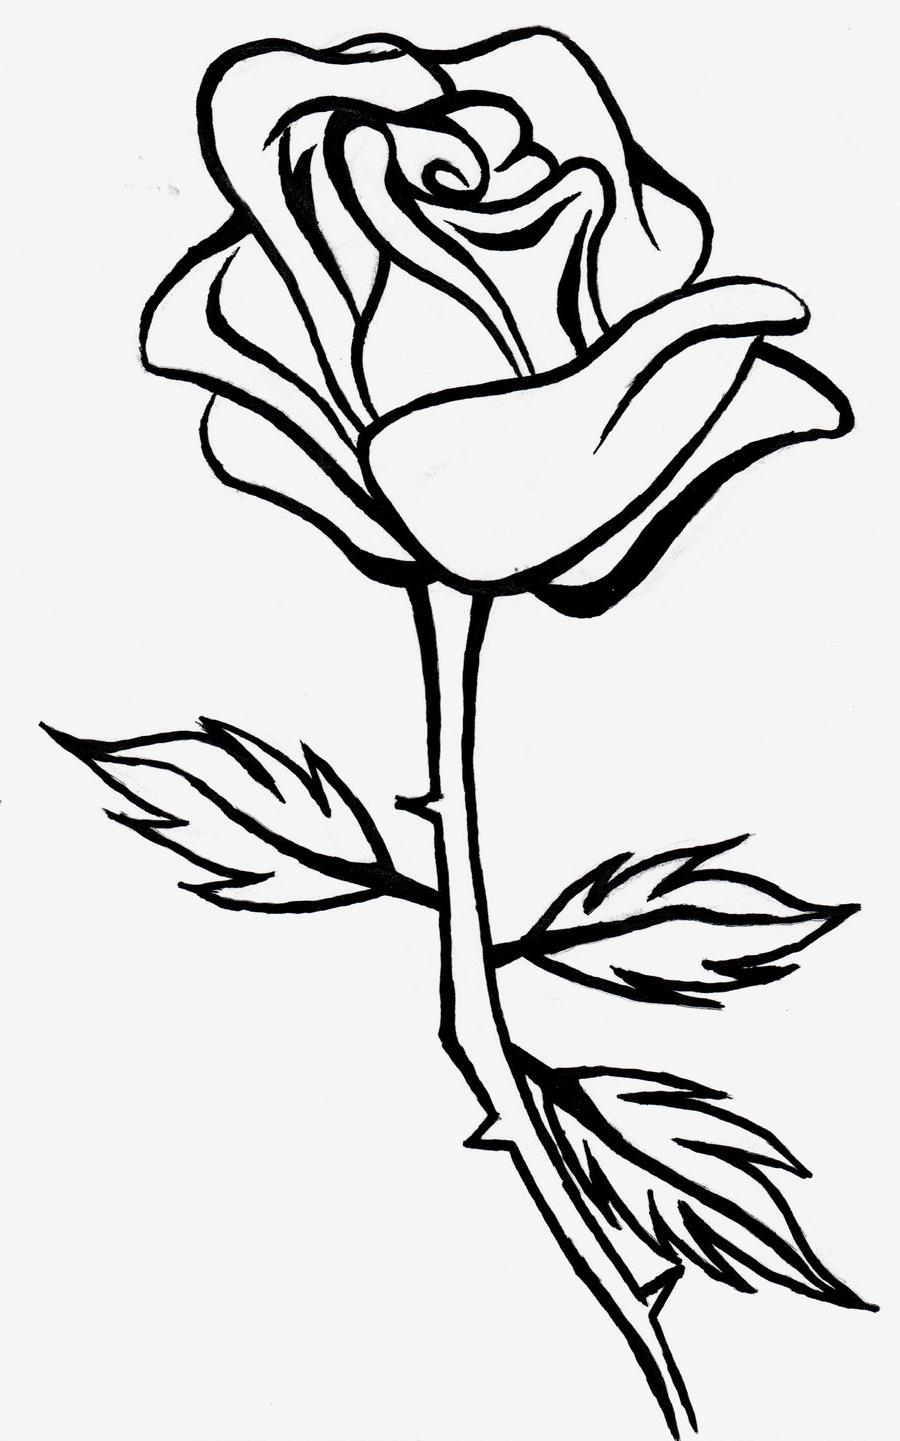 roses black and white drawing at getdrawings com free for personal rh getdrawings com rose clipart black and white clipart rose black and white free